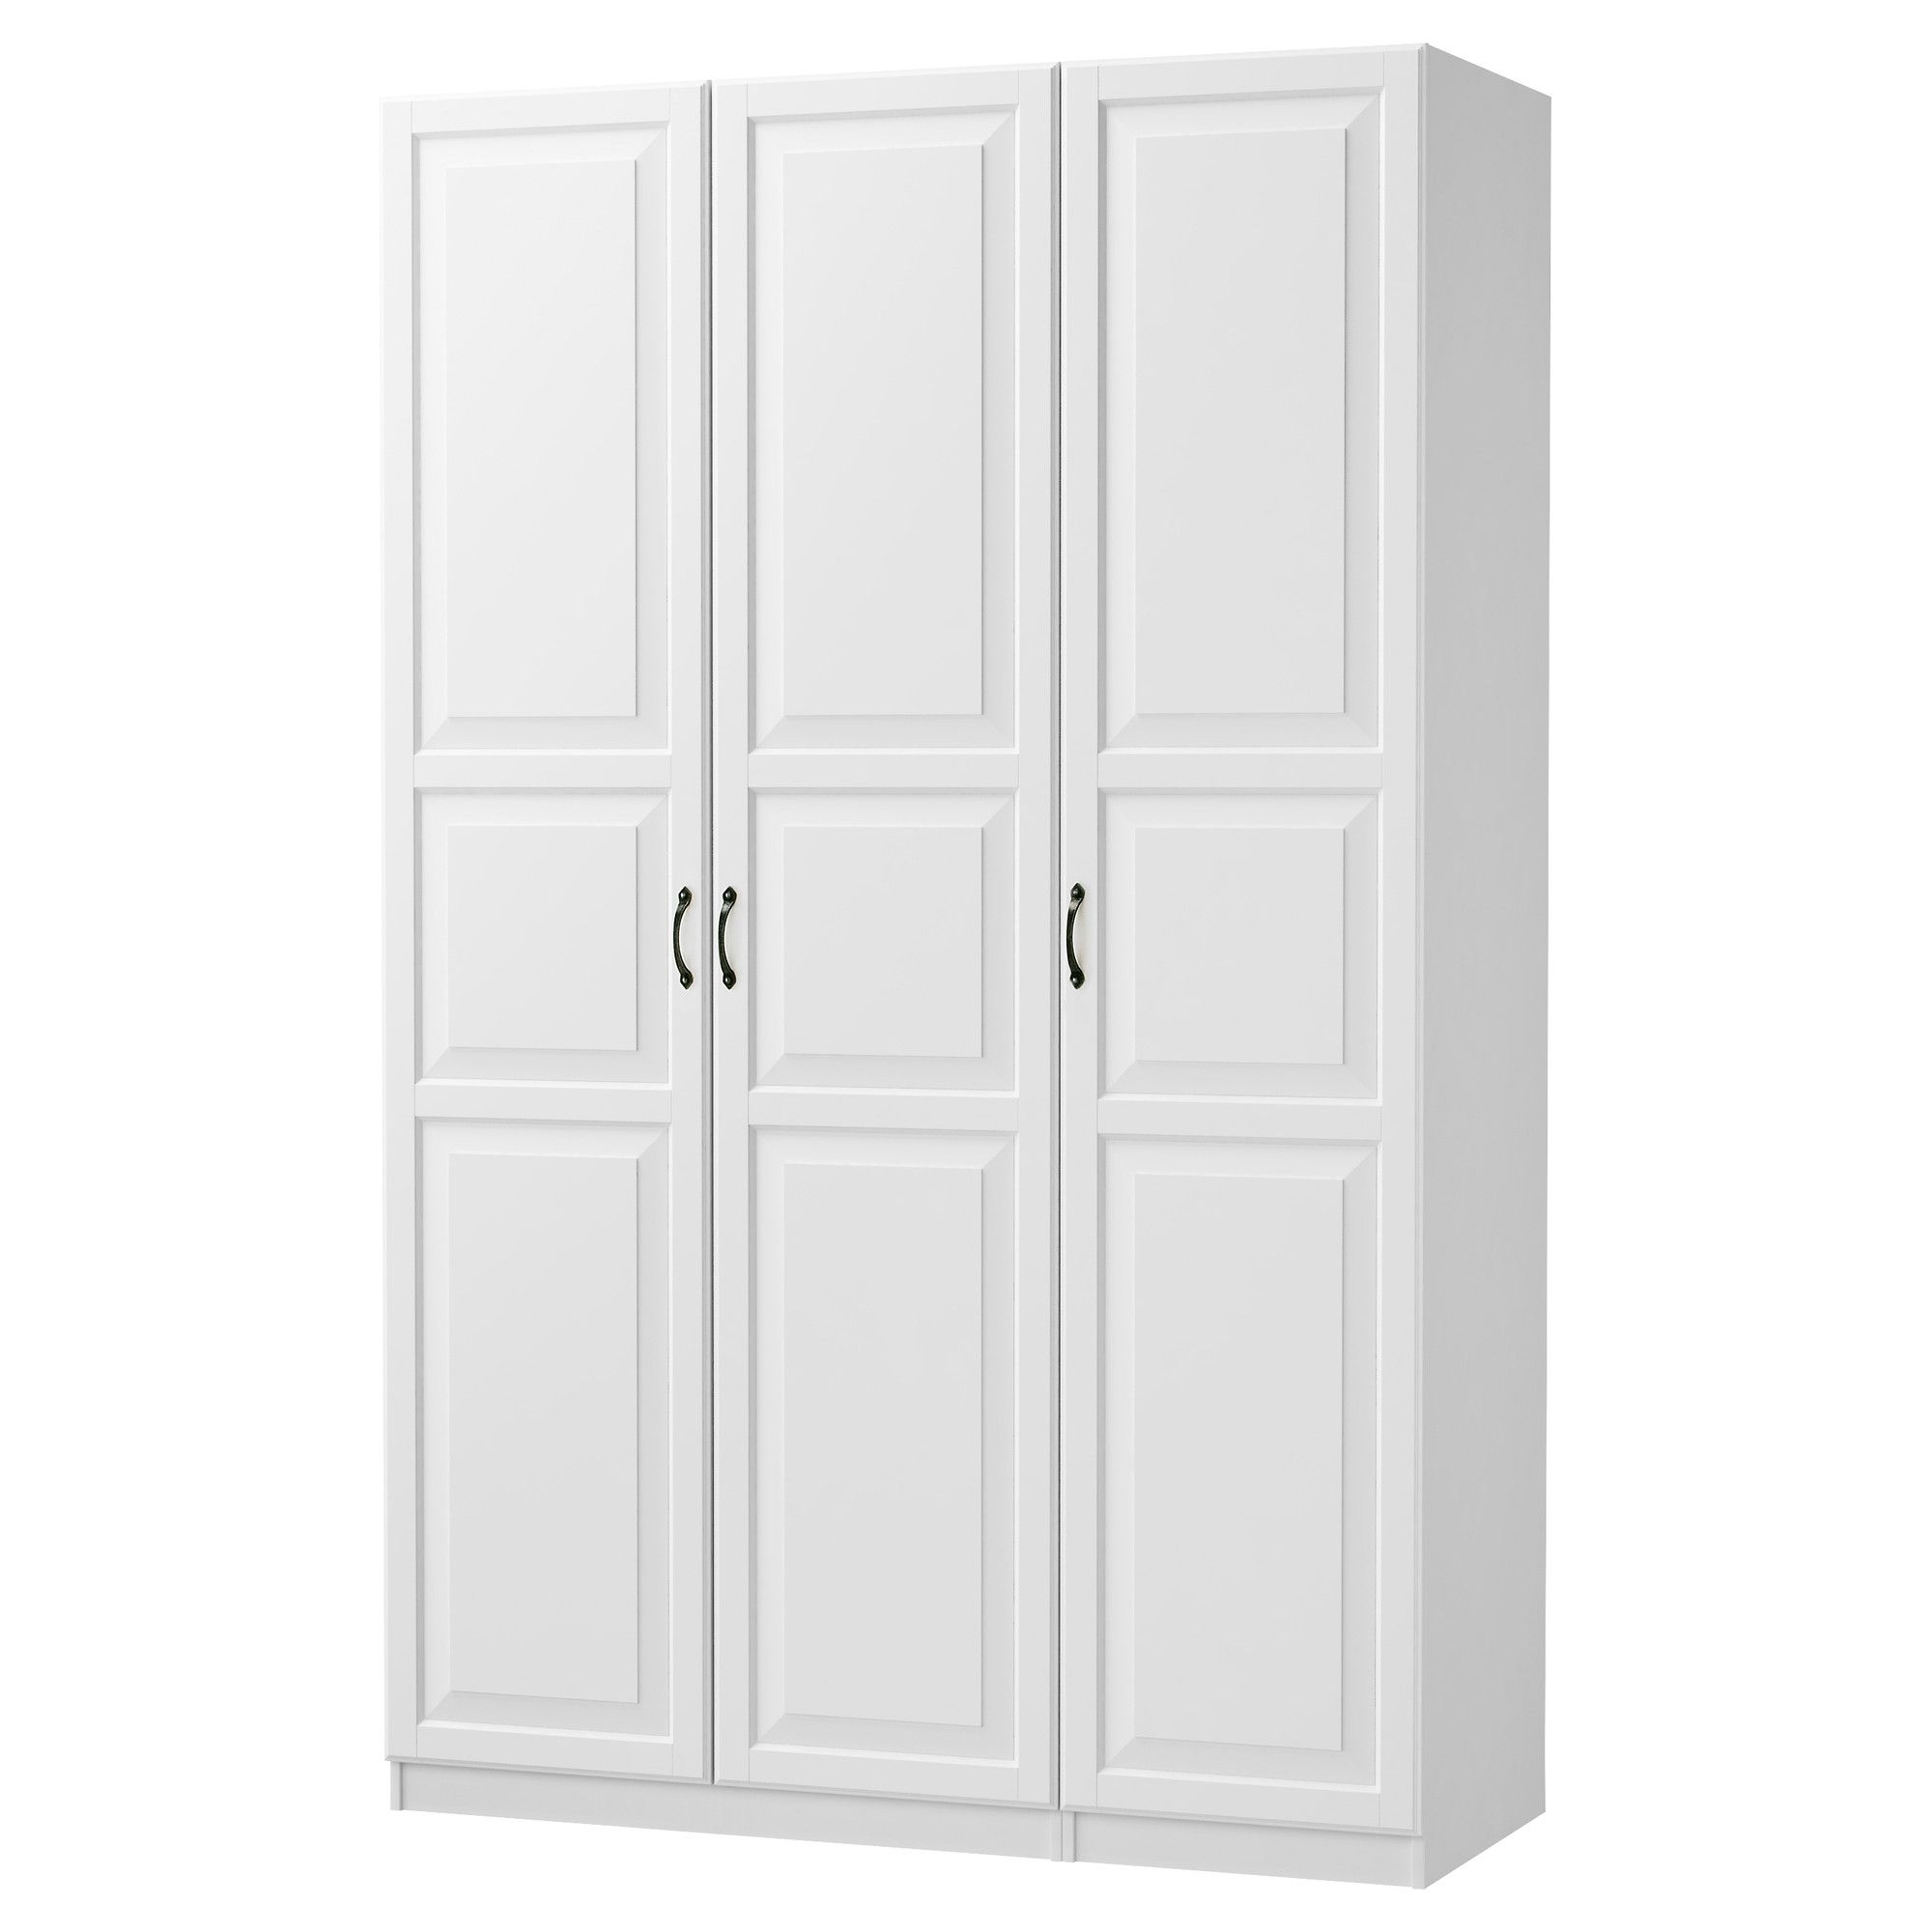 PAX Wardrobe With 3 Doors